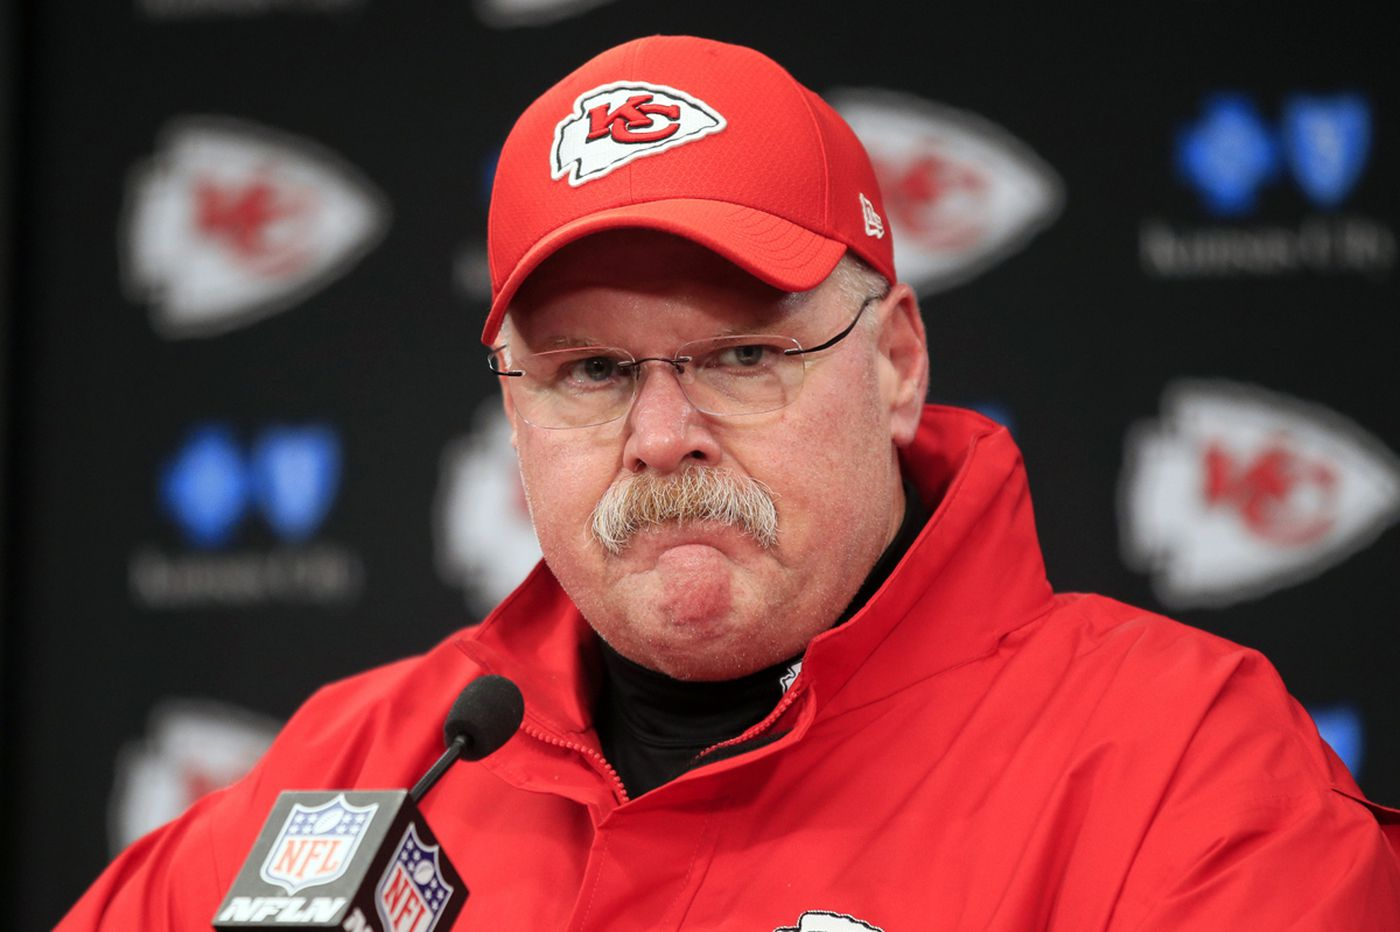 Radio host Kevin Kietzman faces backlash after evoking death of Andy Reid's son